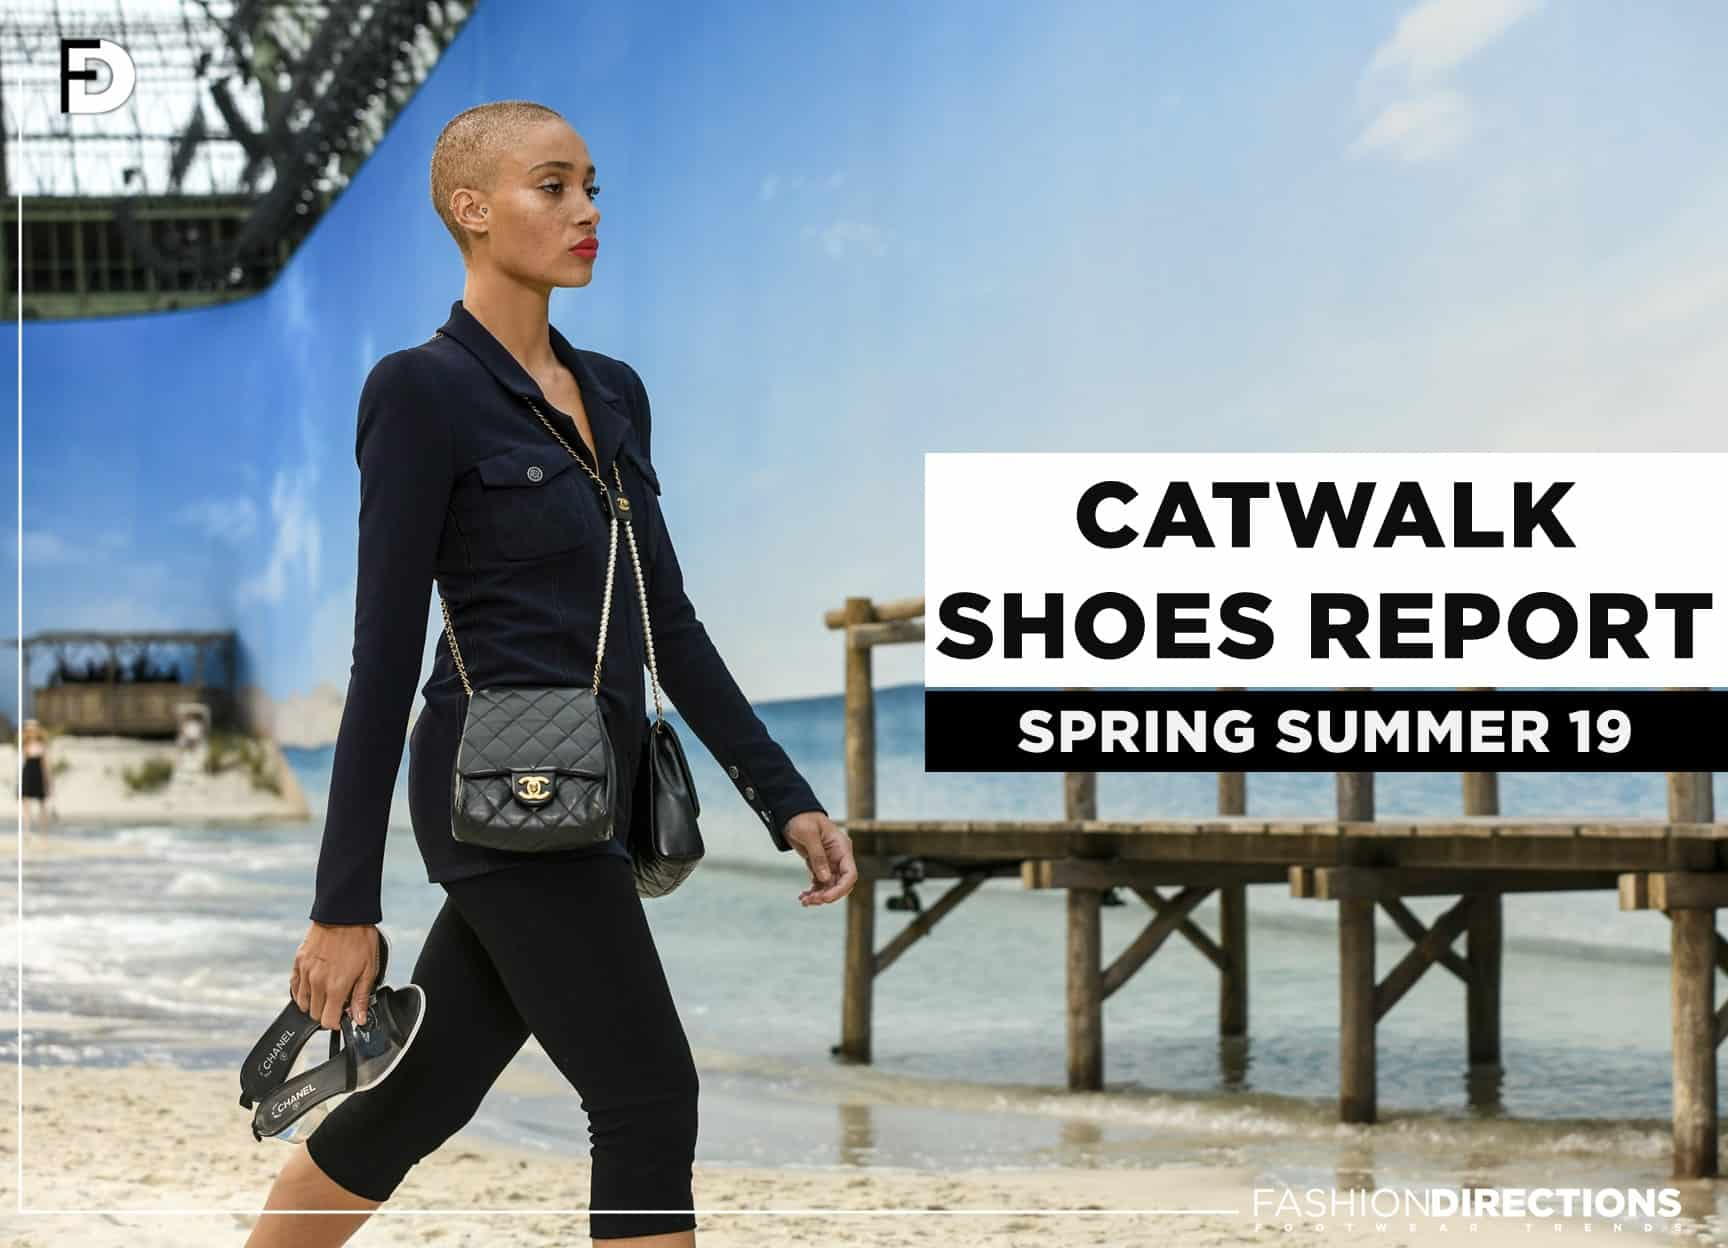 SS19 catwalk shoes Footwear trends